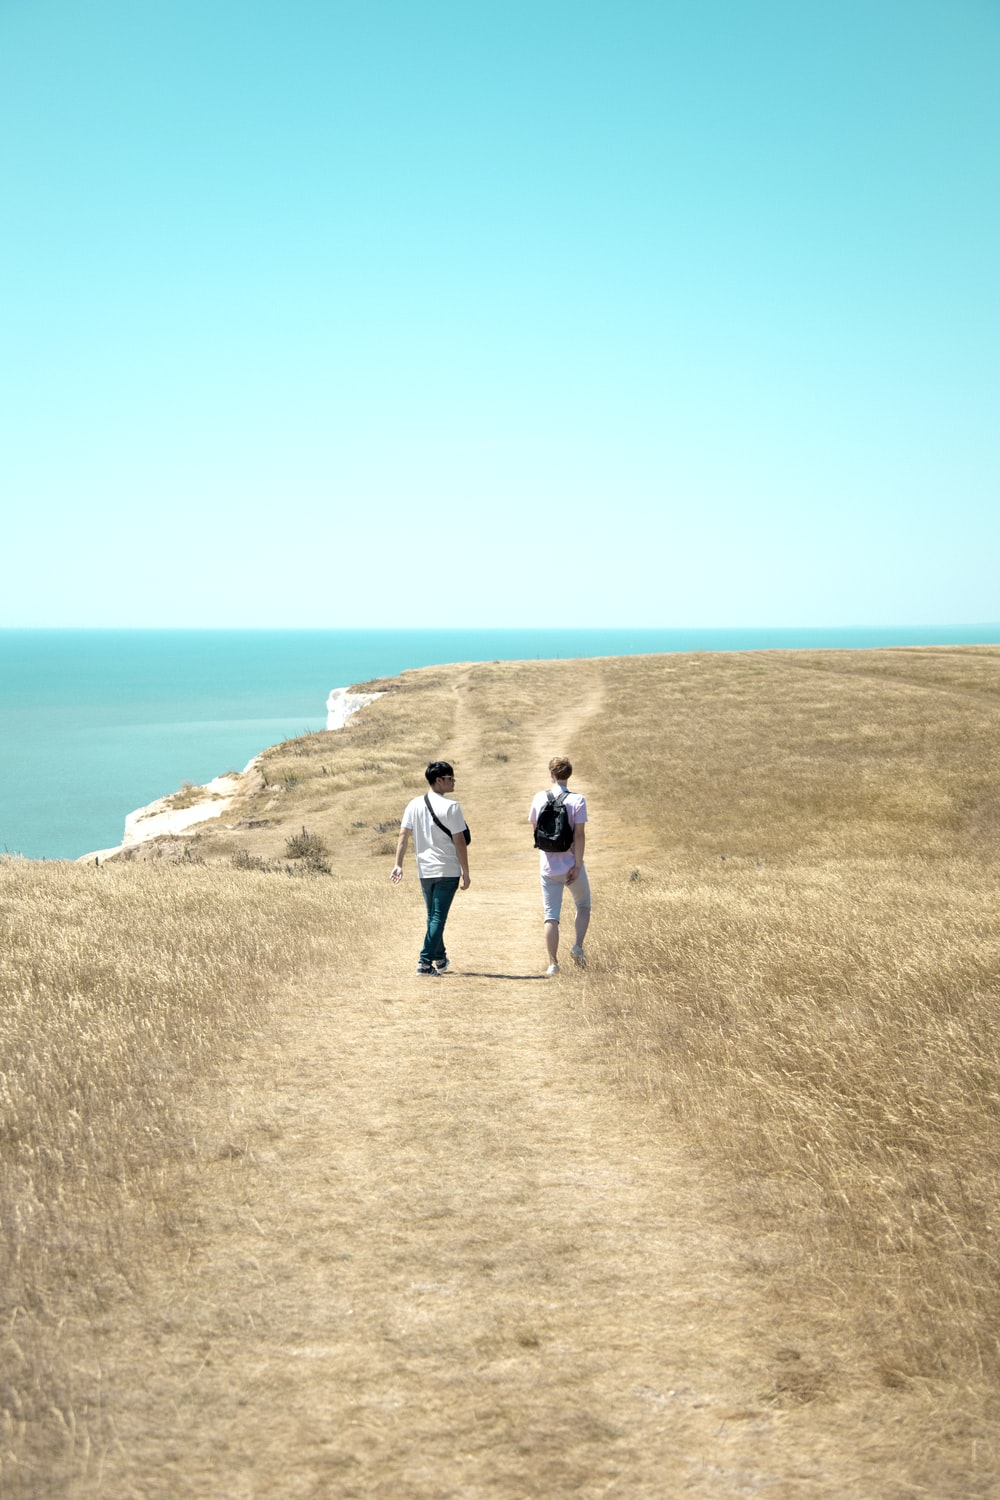 2 men and woman standing on brown rock formation near blue sea during daytime